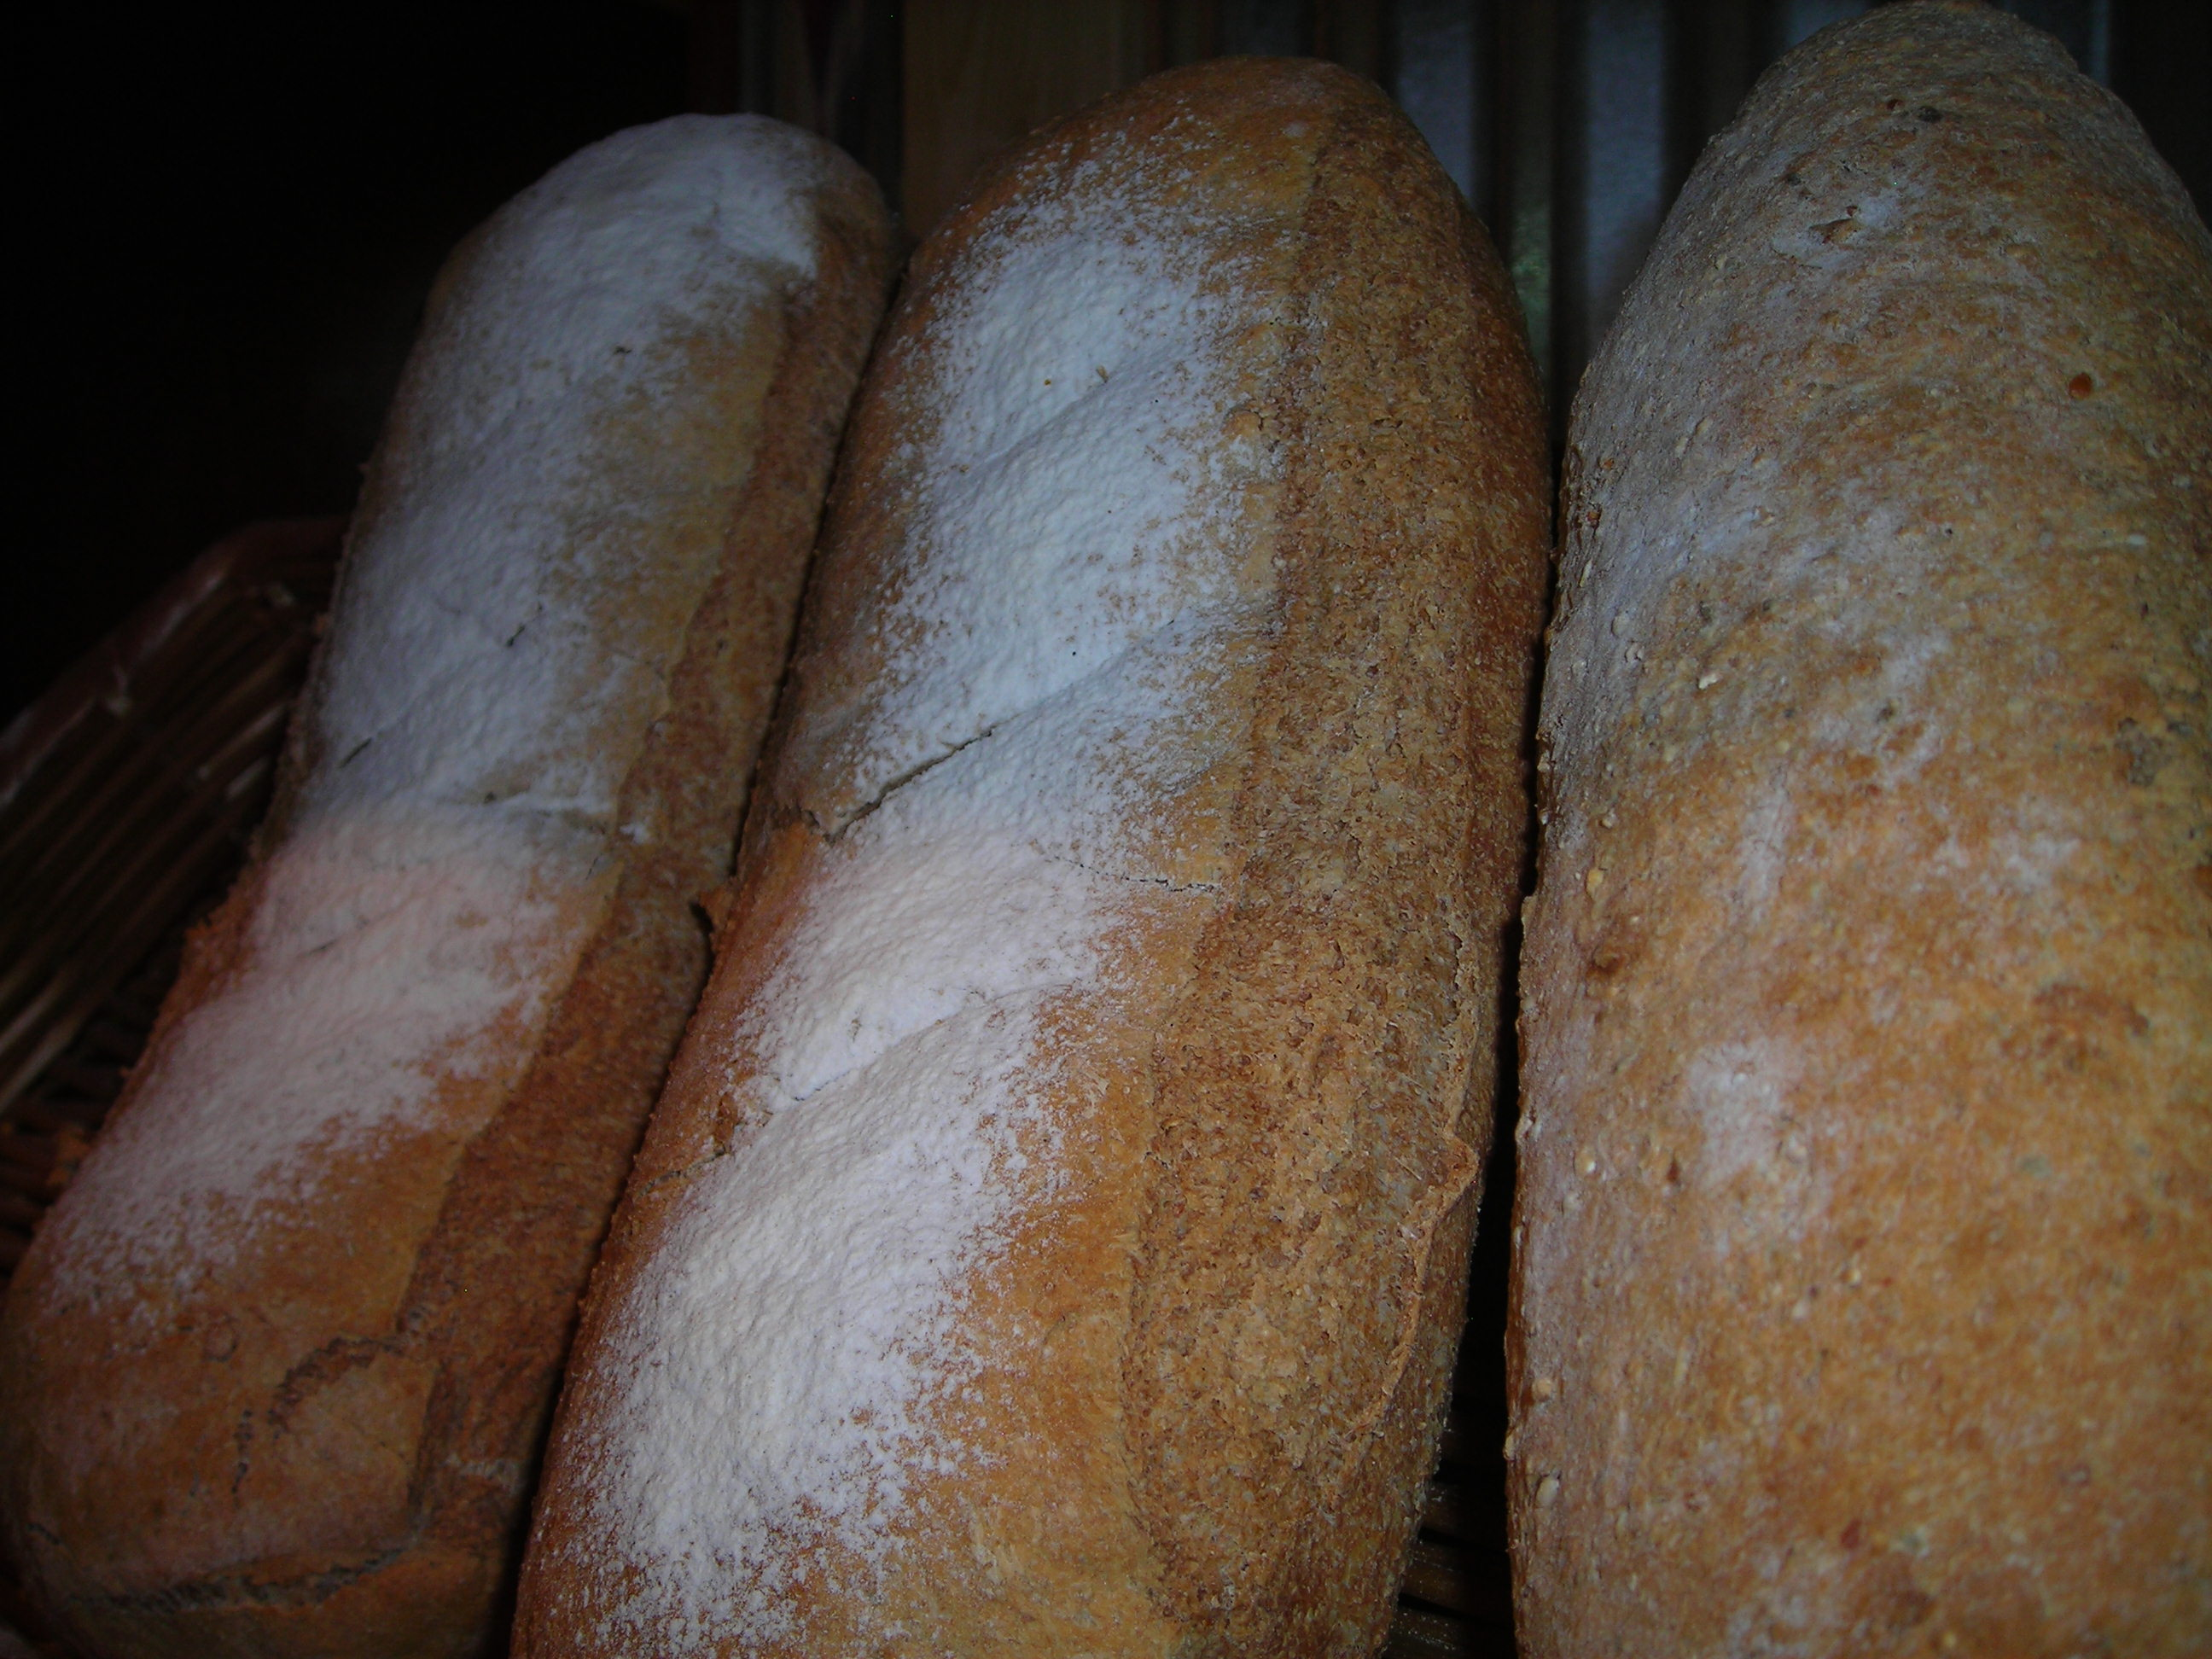 We can bake your bread - just give us a call:  Wheat, White, Cracked Wheat, Honey Wheat, Bavarian Dark, Rye, Sourdough and French in your favorite shape: Long, Sandwich loaf, Boulle, Baguette.